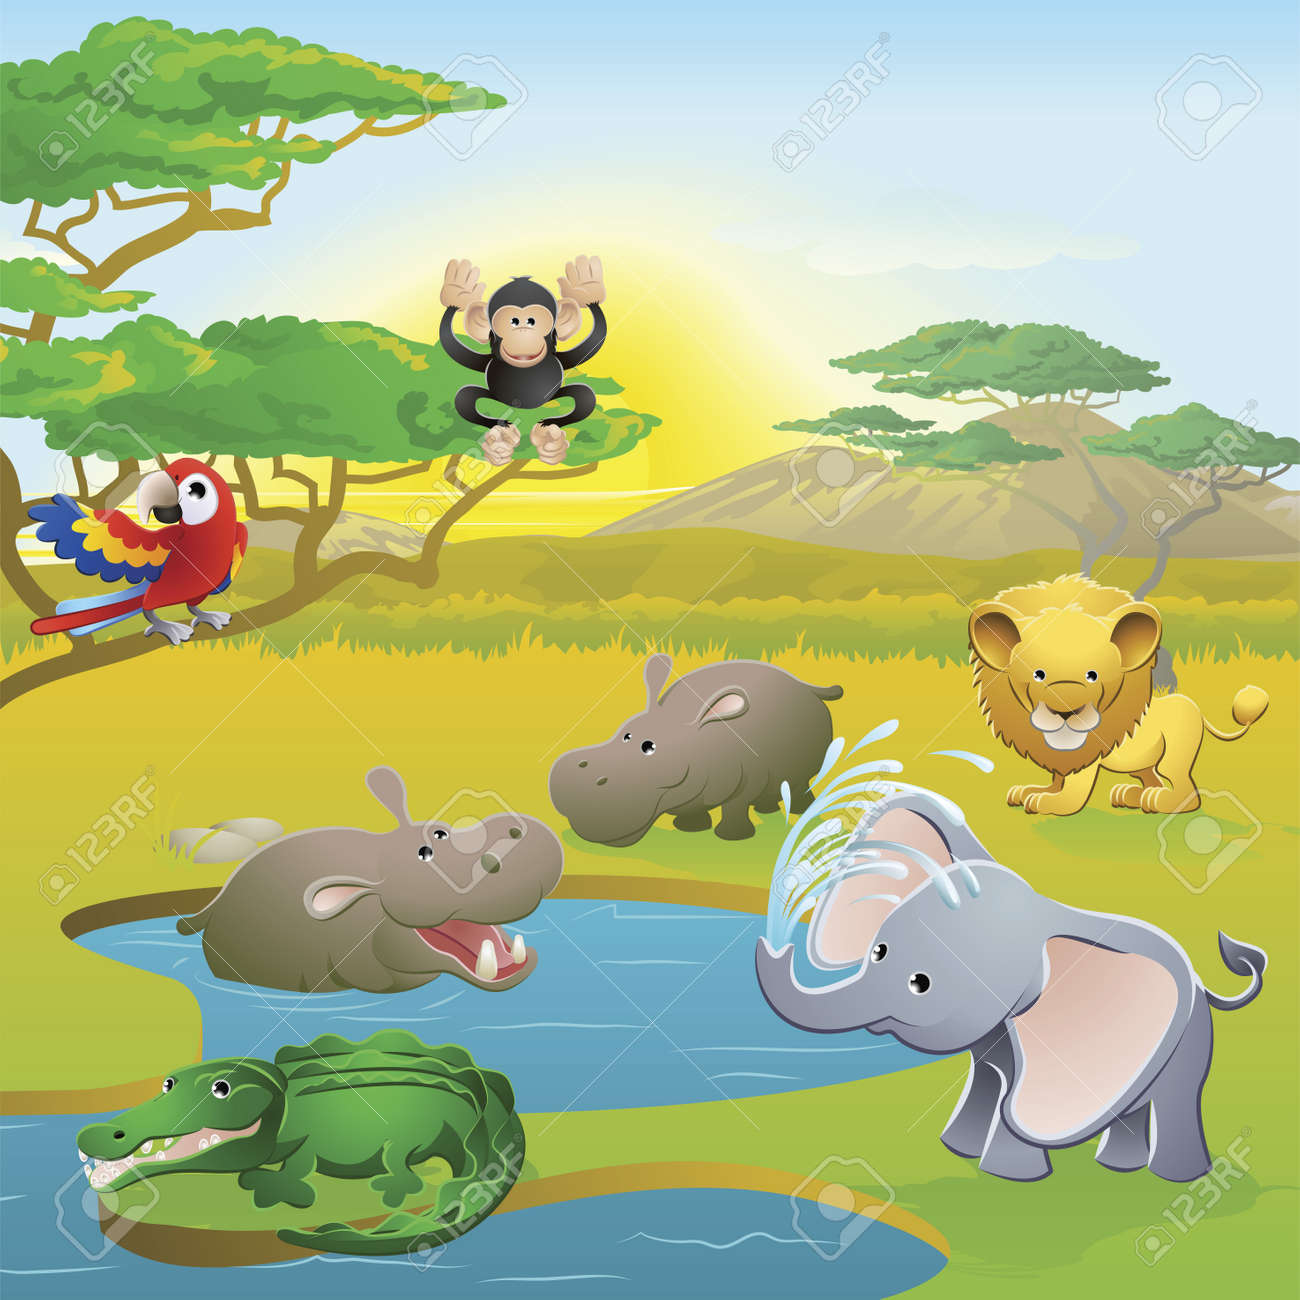 Cute African safari animal cartoon characters scene. Series of three illustrations that can be used separately or side by side to form panoramic landscape. Stock Vector - 9637574